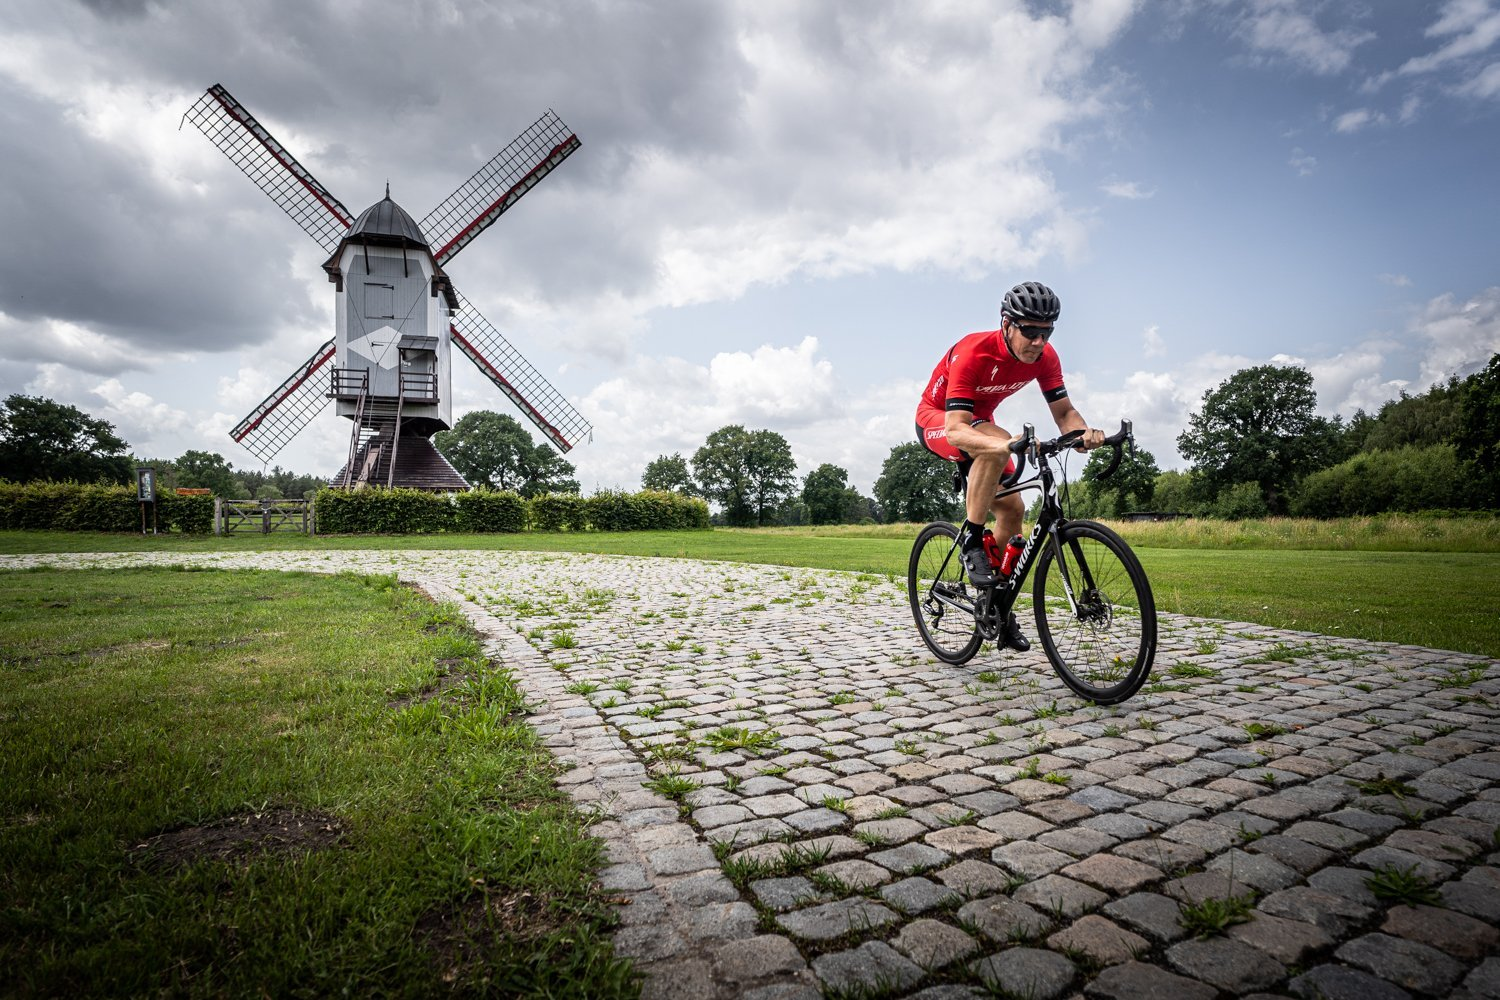 2020-06-22 Absolute Cycling fotoshoot Erwin Rademakers Flanders Make LR-06921